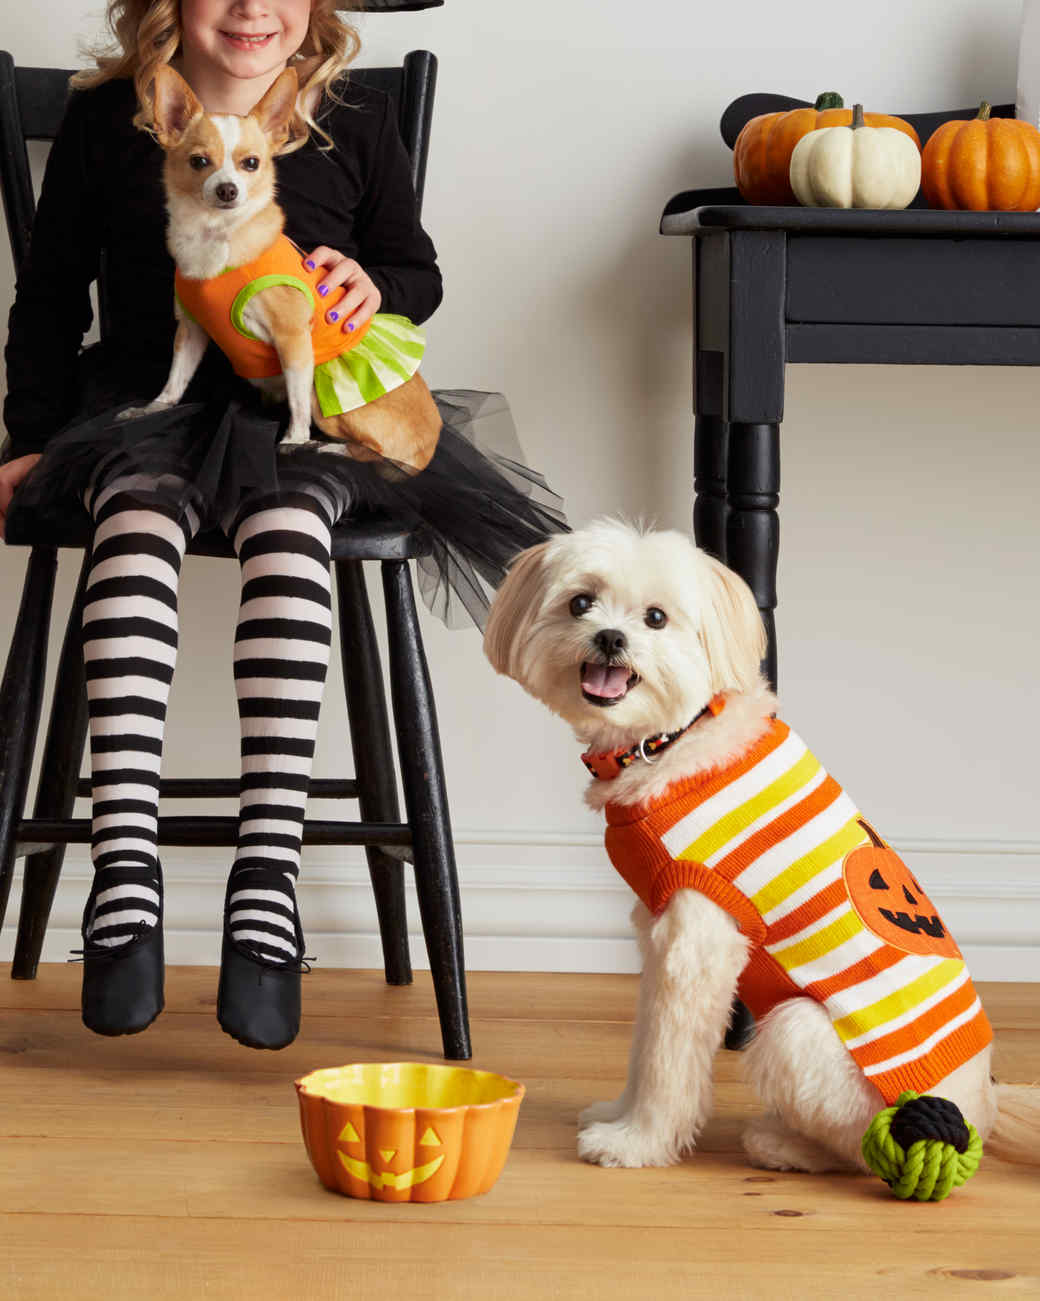 mspets-dog-halloween-pumpkinsweater-d112236-mrkt-0915.jpg